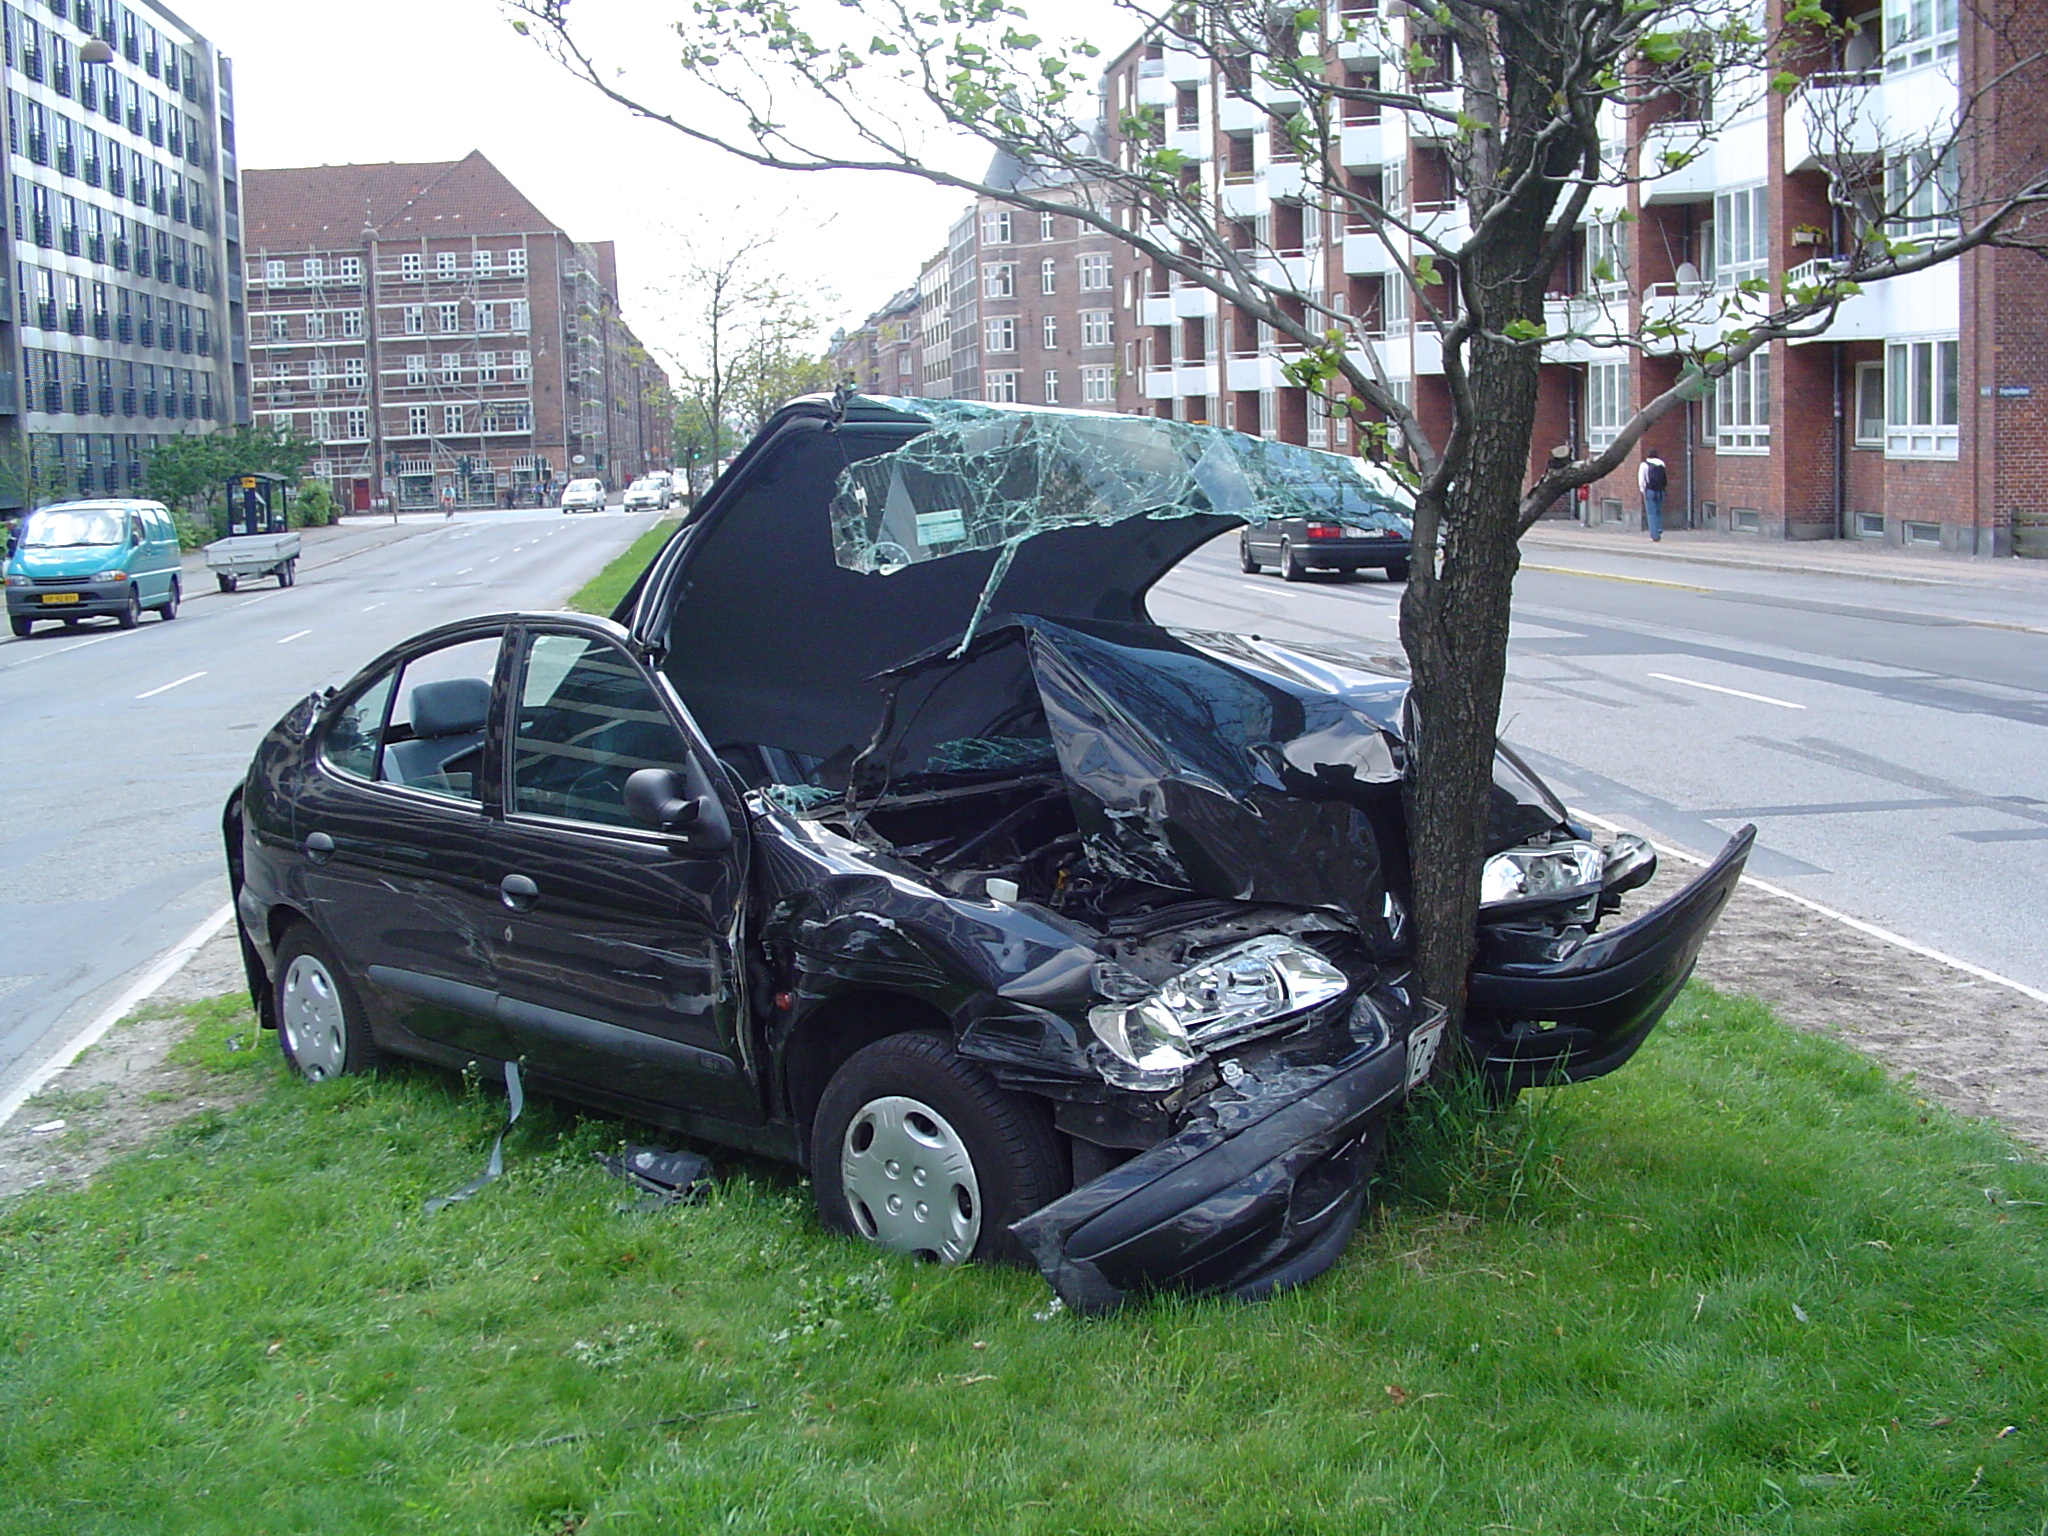 Tips to Prevent Injuries in a Car Accident